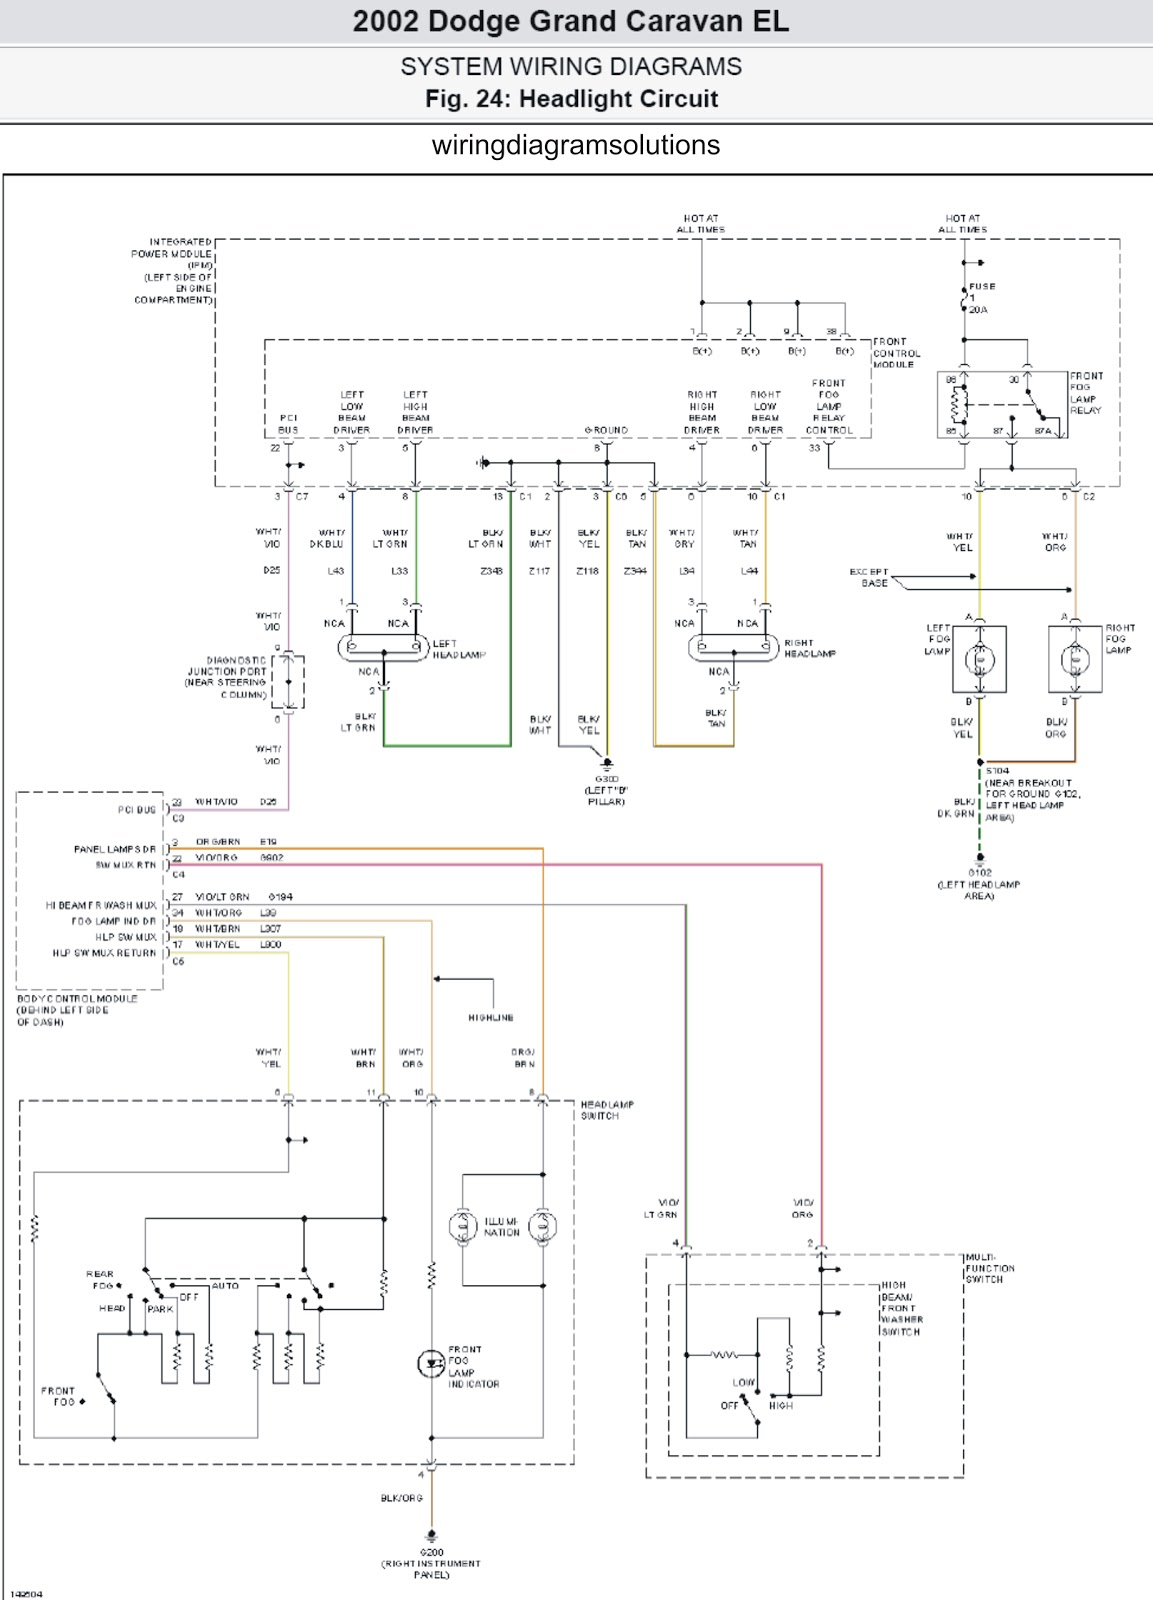 diagram 2005 dodge grand caravan wiring file zr52168 ken